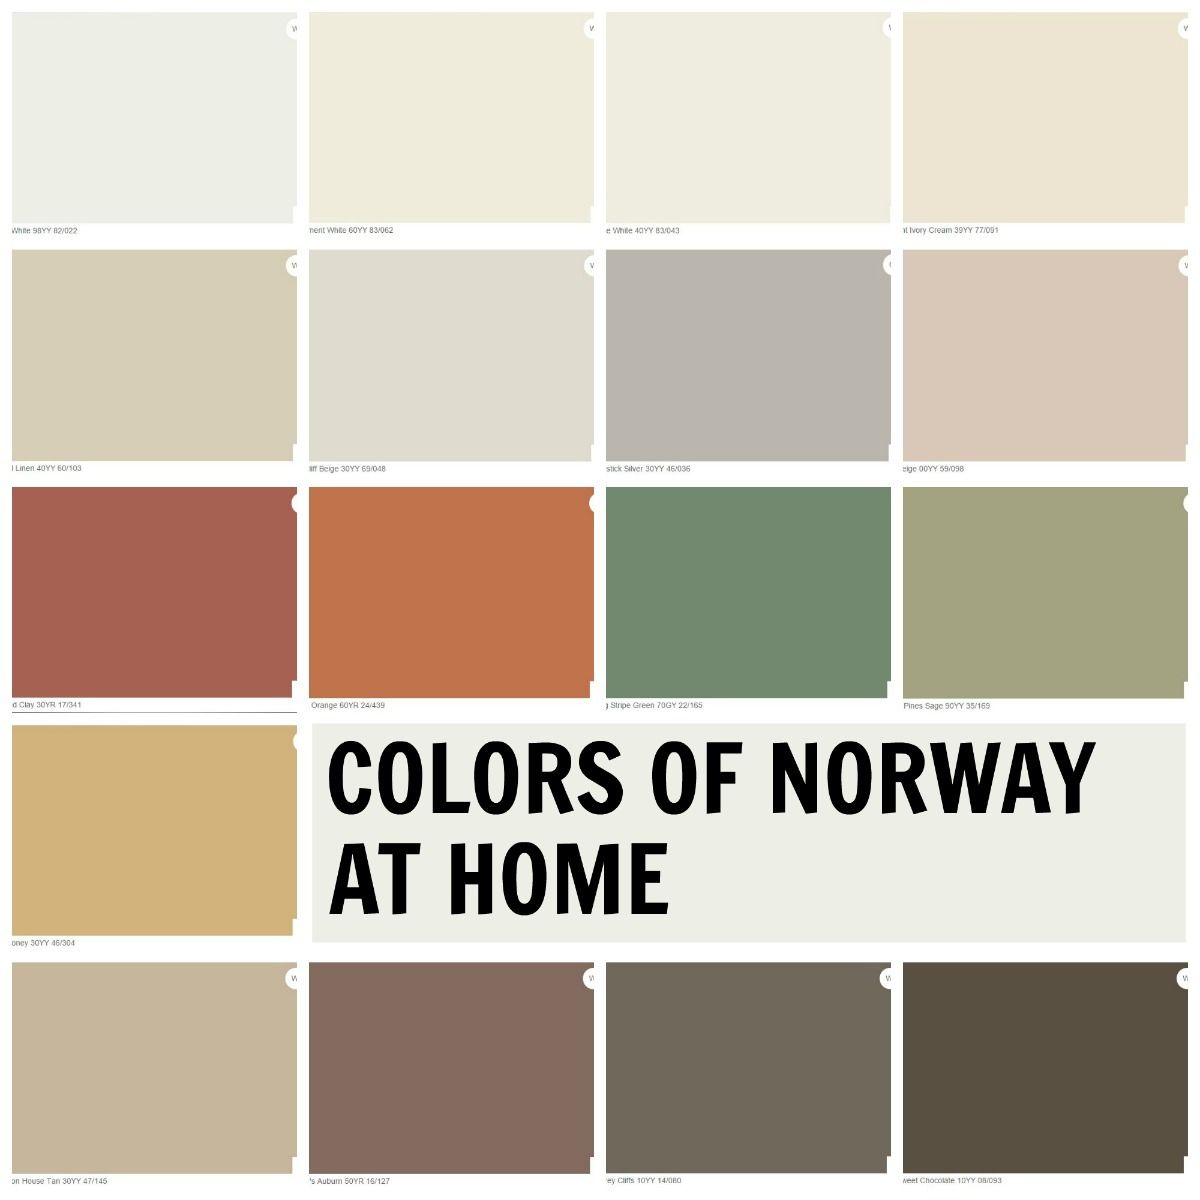 colors of norway at home palette the perfect combination for our home - Home Decor Color Palettes